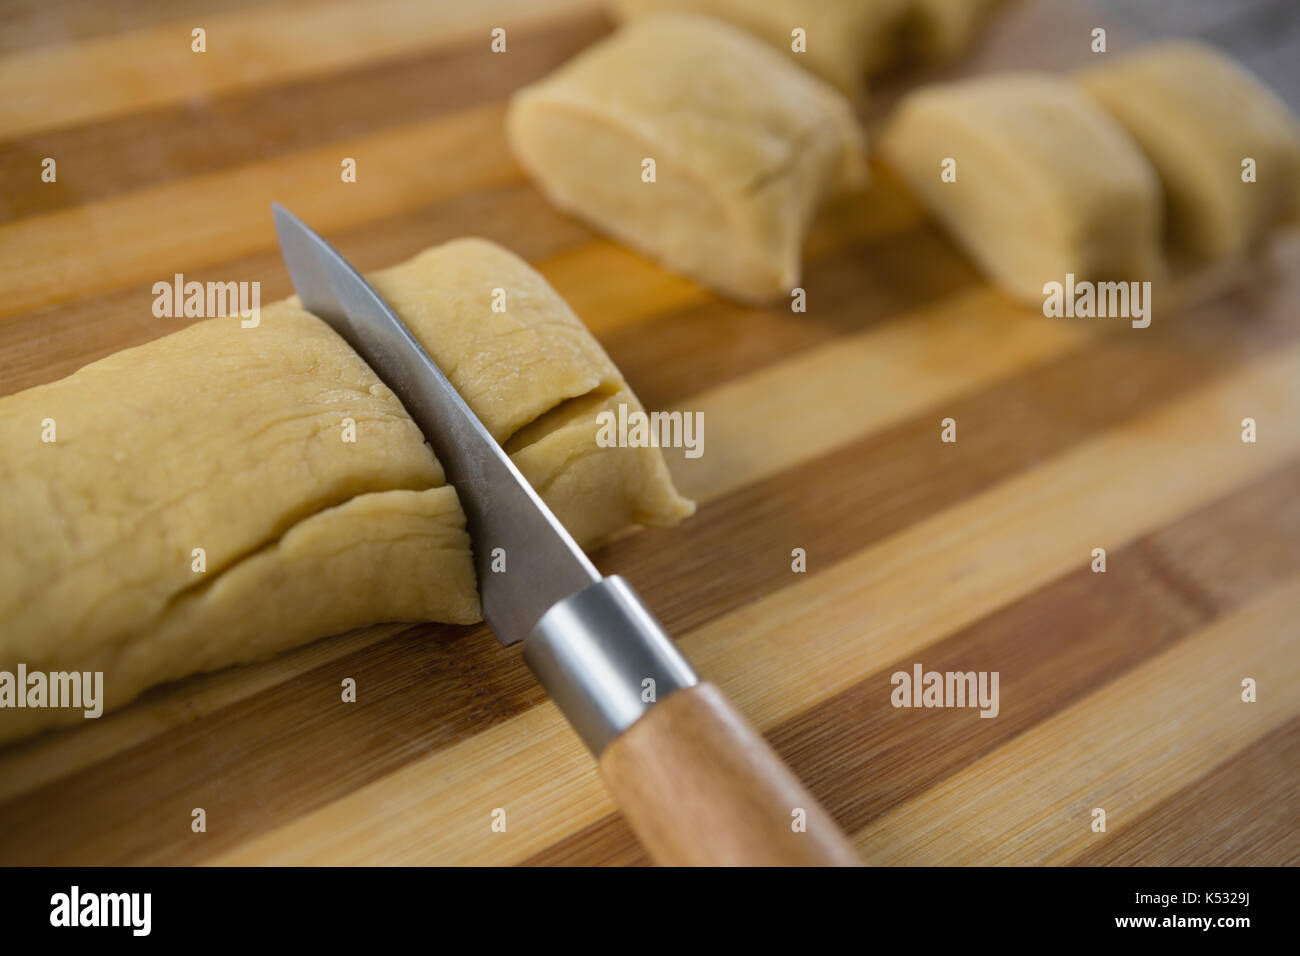 Cropped image of kitchen knife cutting dough on cutting board - Stock Image